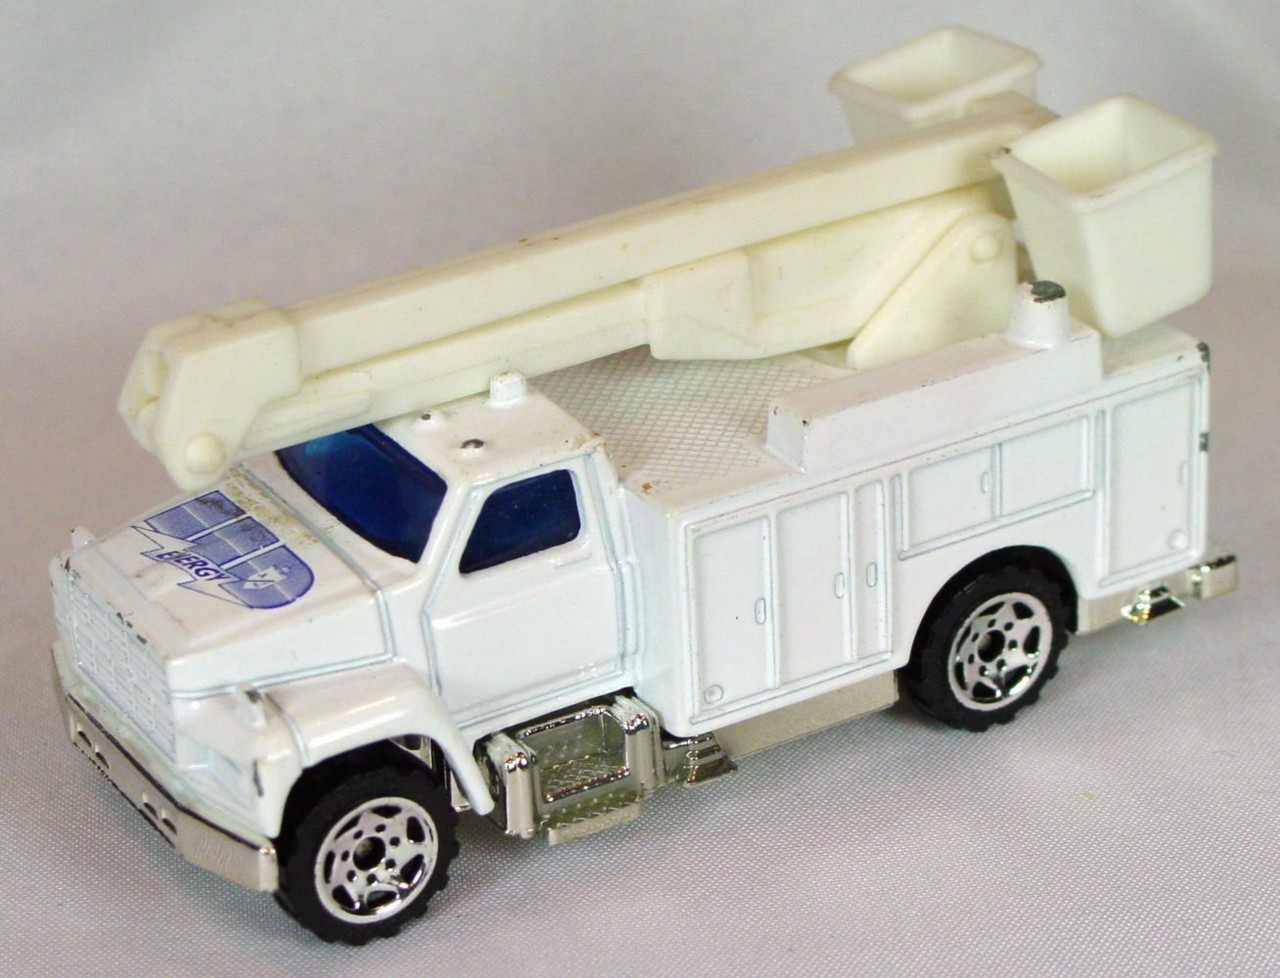 ASAP-CCI 33 G - Utility Truck White UD Energy ASAP